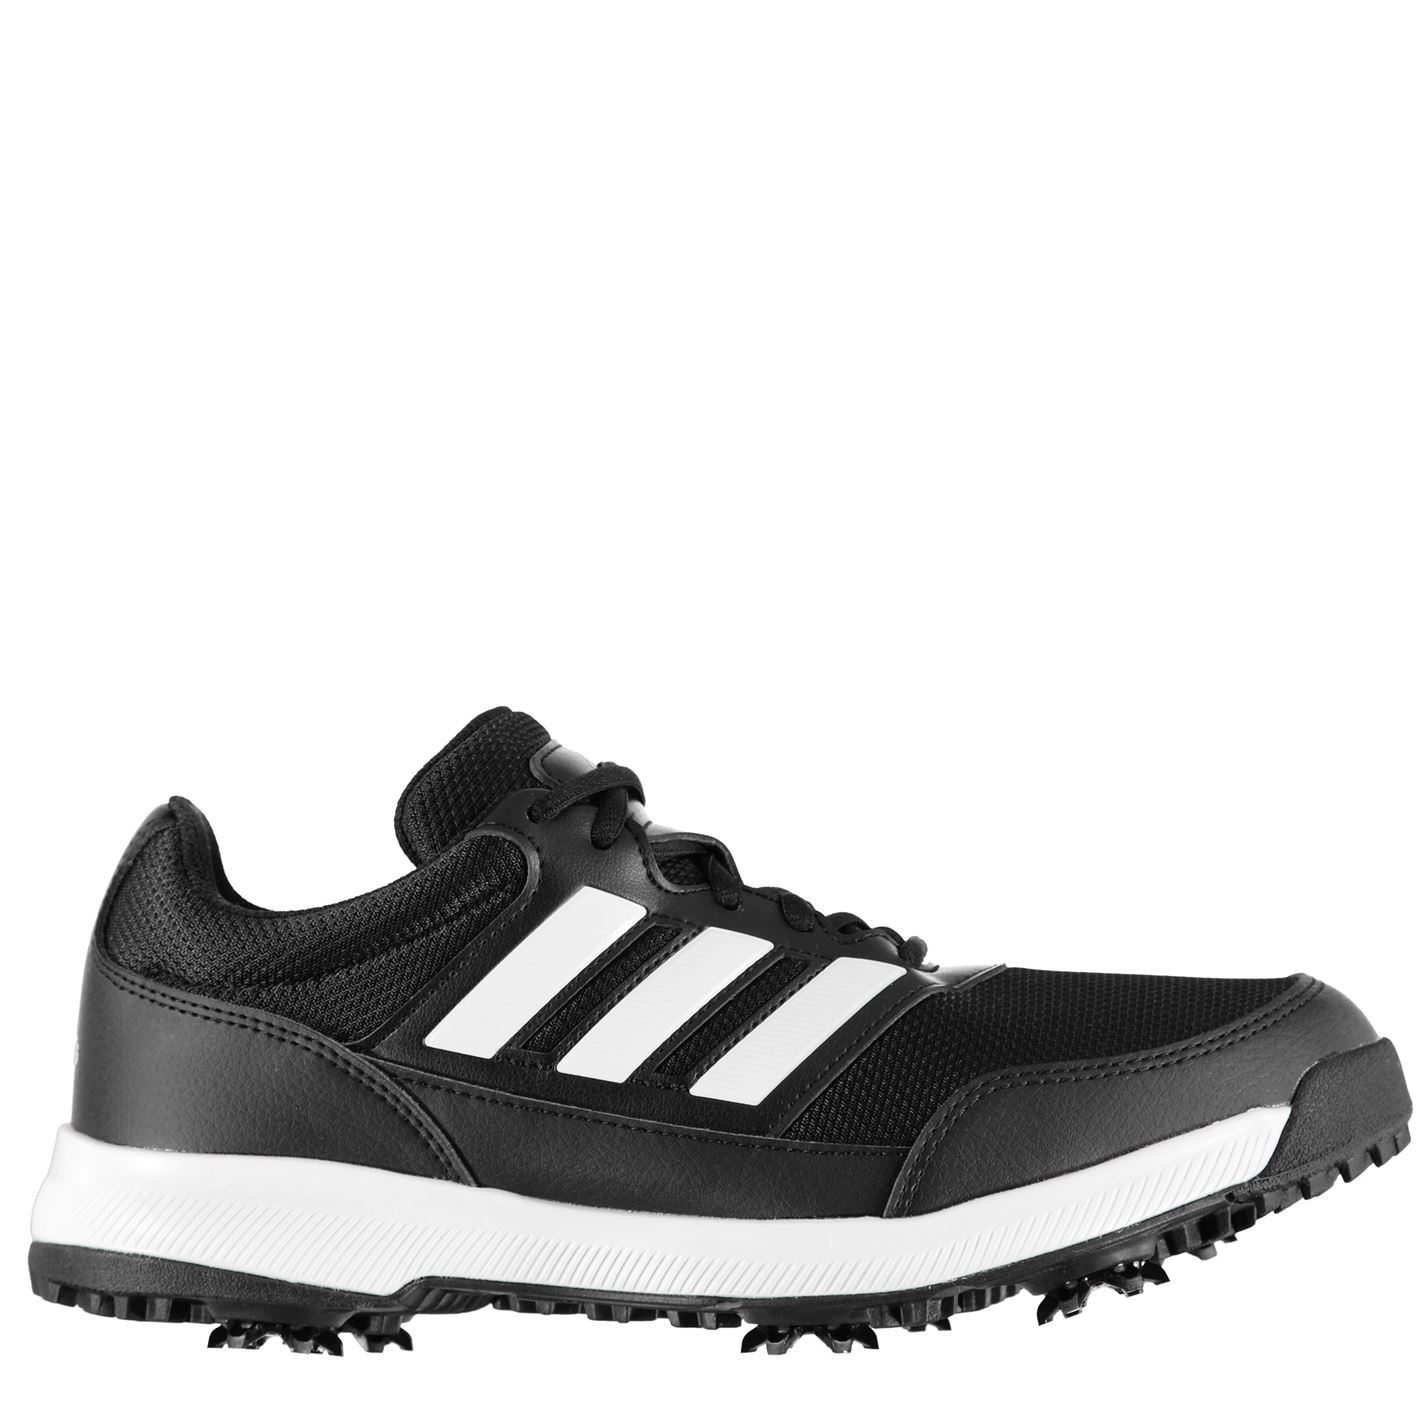 Adidas Tech Response 2 0 Mens Golf Shoes Spiked Changeable Stud Laced Trainers Ebay